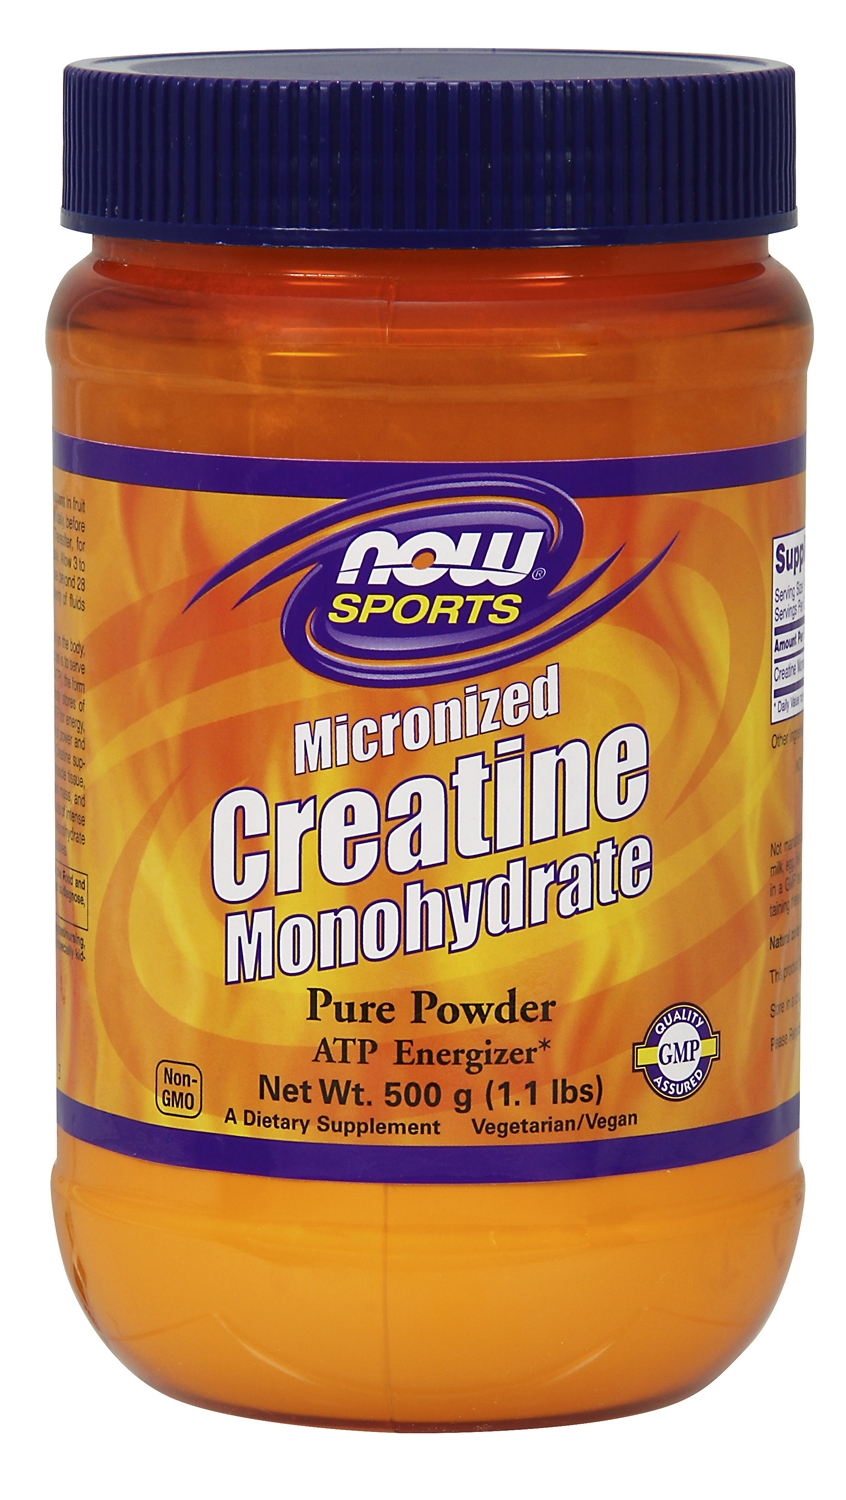 Creatine Monohydrate Micronized 500 g (1.1 lbs) by NOW